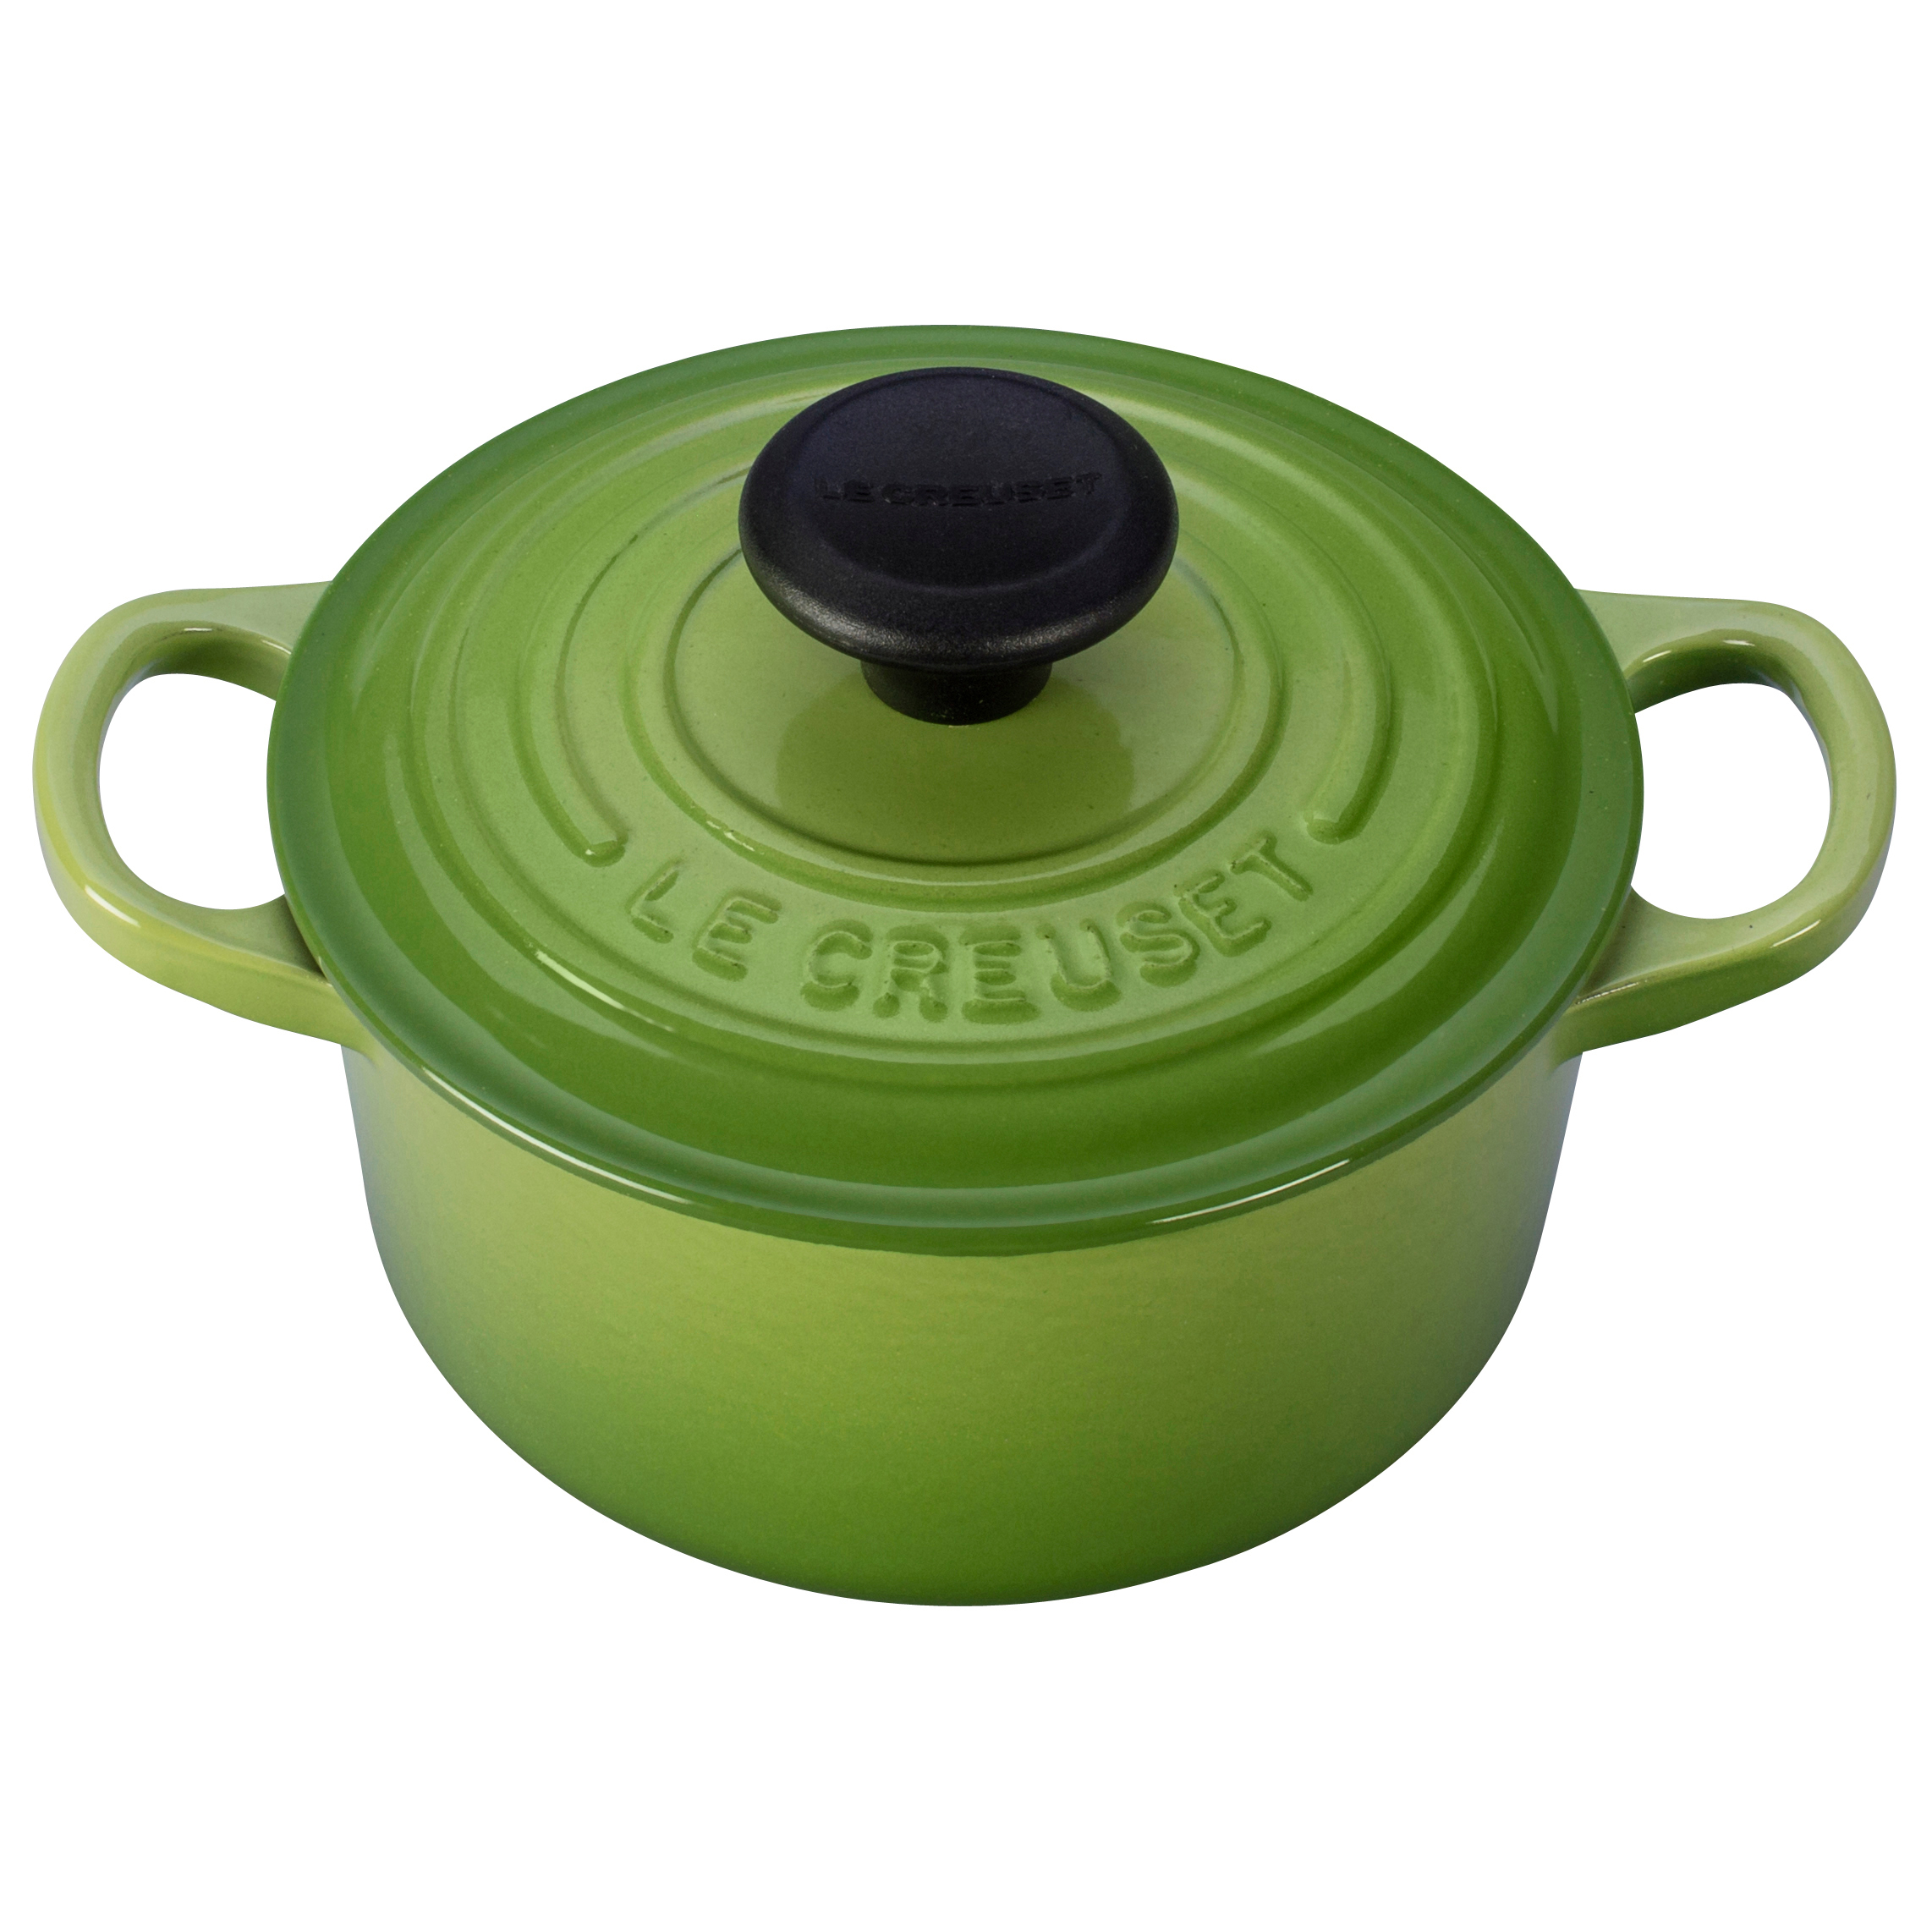 Le Creuset Signature Palm Enameled Cast Iron Round French Oven, 1 Quart